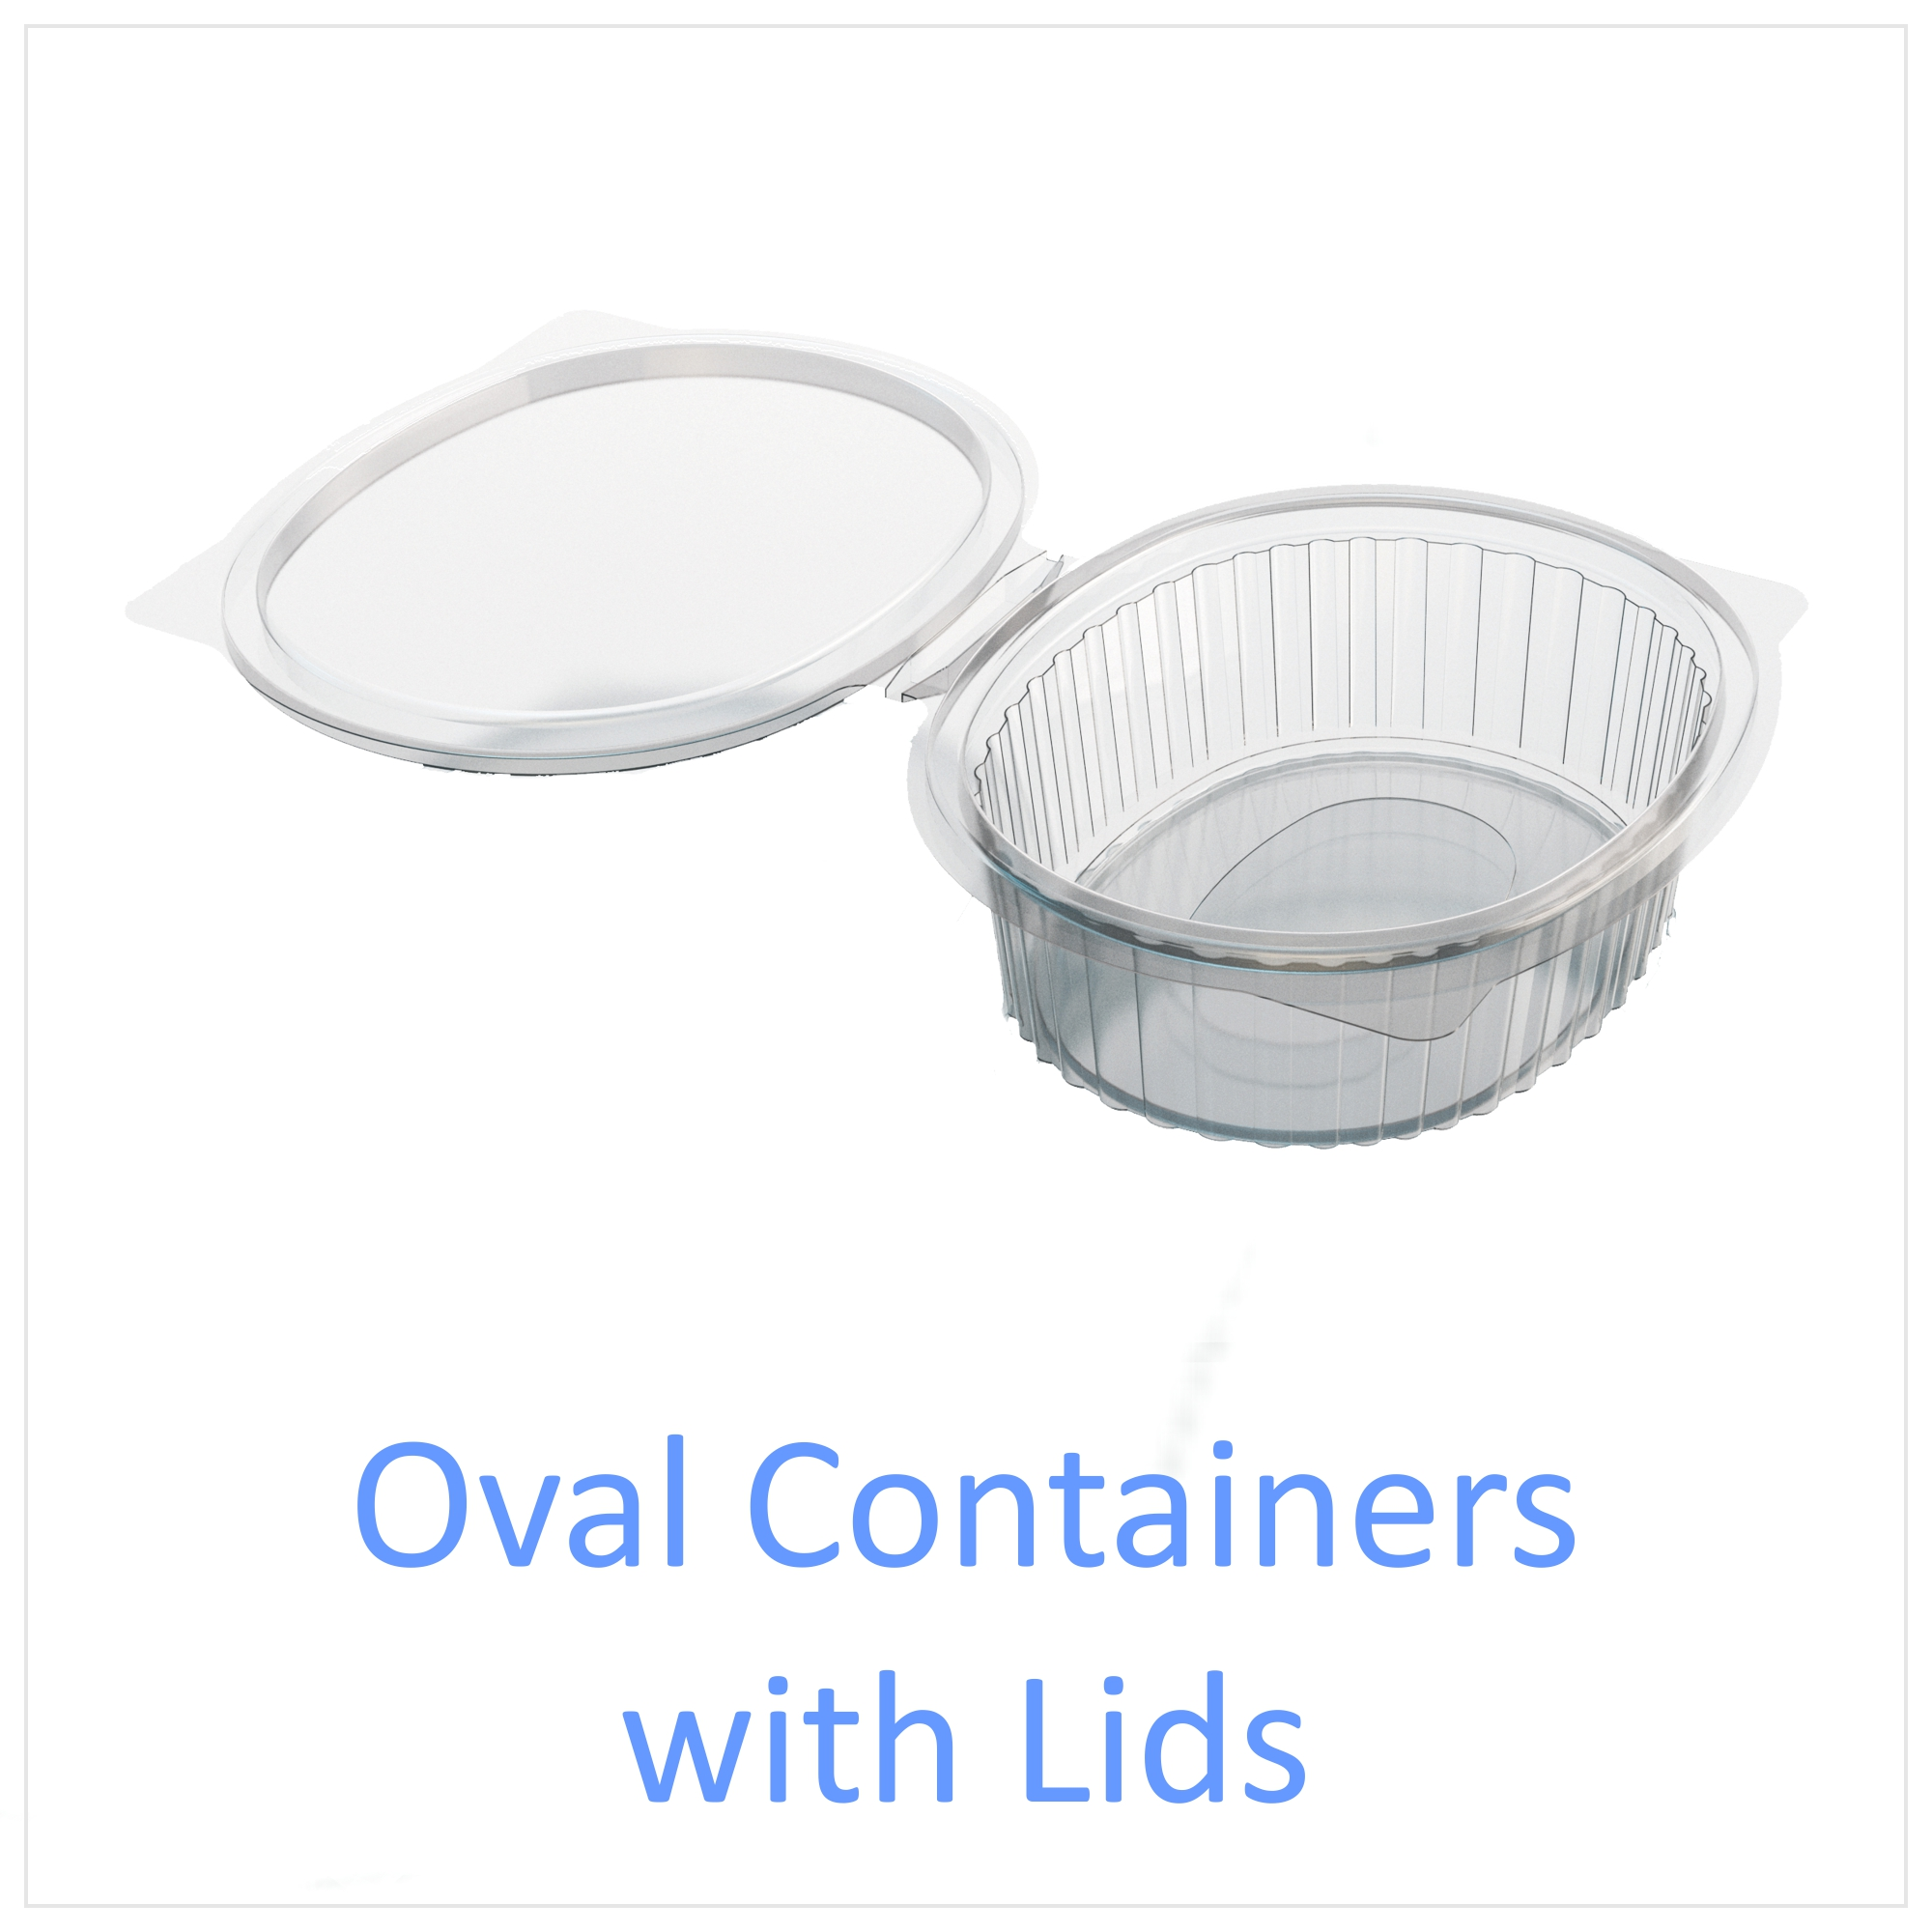 Oval Containers with Lids